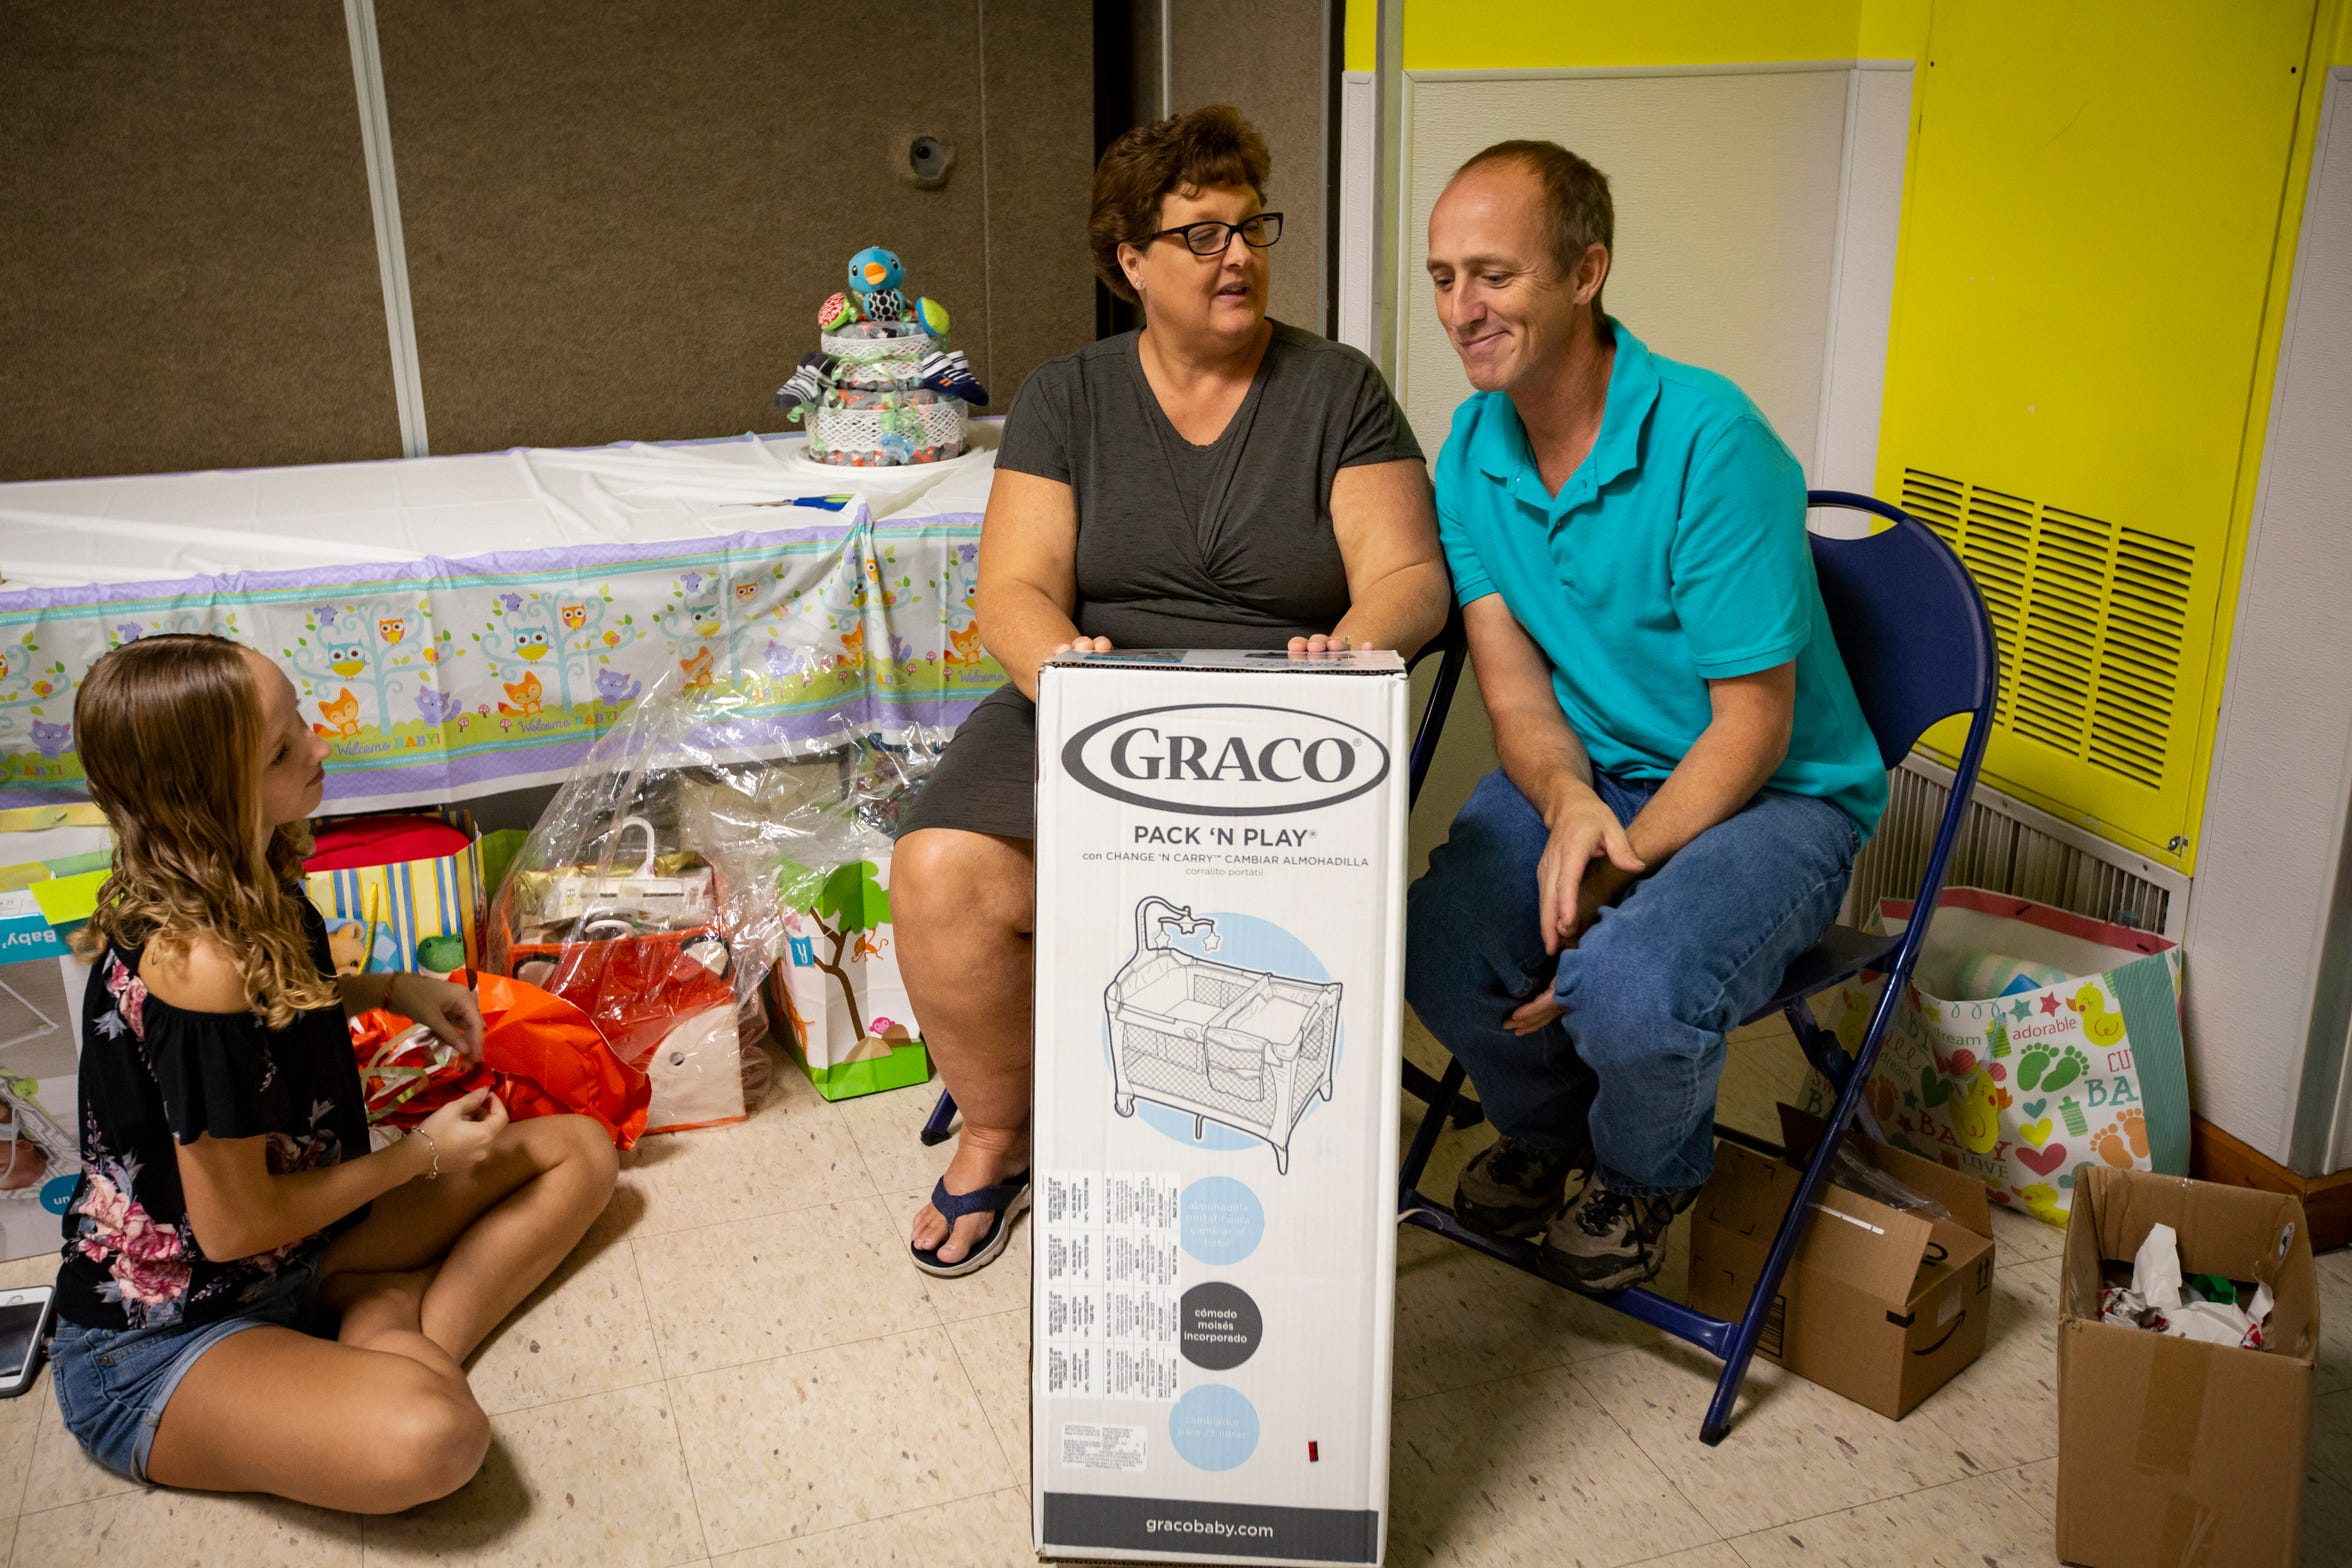 Michele Hall, her husband, Jerry, and their 14-year-old daughter, Aubrey, open presents during Michele's baby shower on Dec. 15, 2018, at Vineyards Park community center in North Naples.  Michele learned about her pregnancy on Oct. 8, 2018, and at that point she was 26 weeks into her pregnancy. At 50, Michele never thought she would have another child after Aubrey, her youngest. But, on Dec. 27, 2018, baby Grayson Matthew Hall was born at NCH North Naples Hospital.